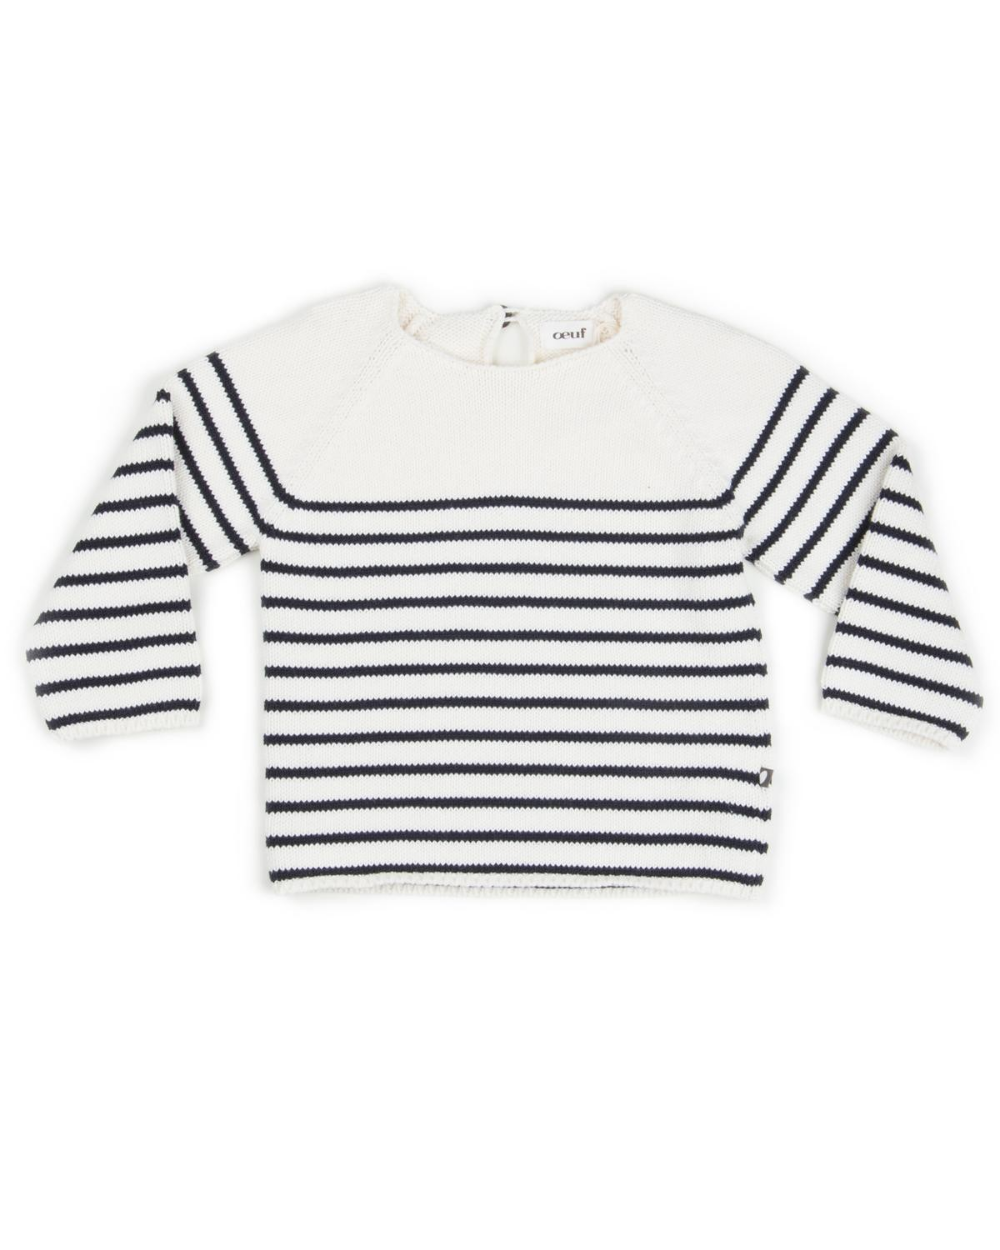 Oeuf Stripe Sweater